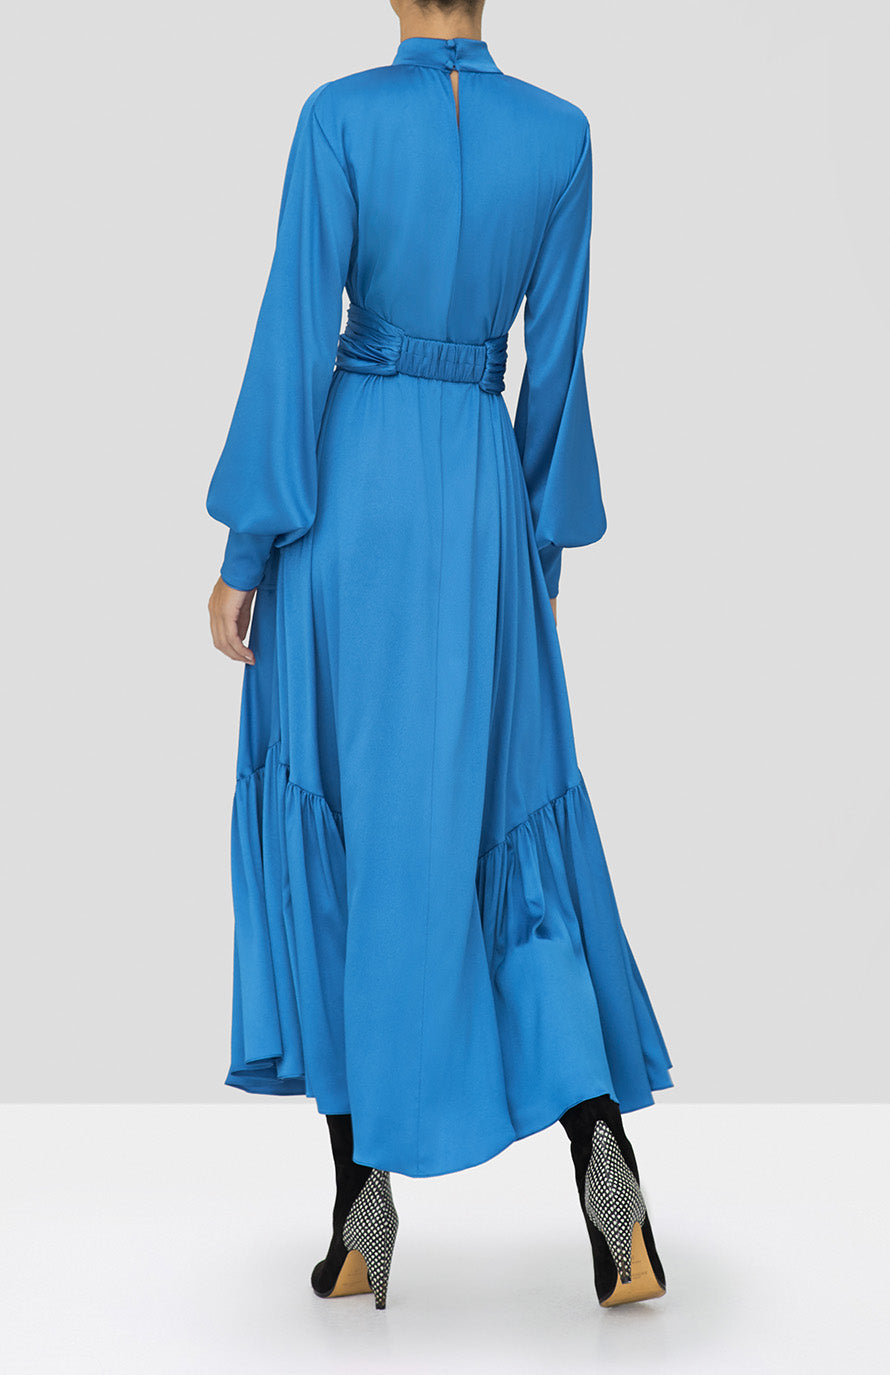 Alexis Calypsa Dress in Azure Blue - Rear View